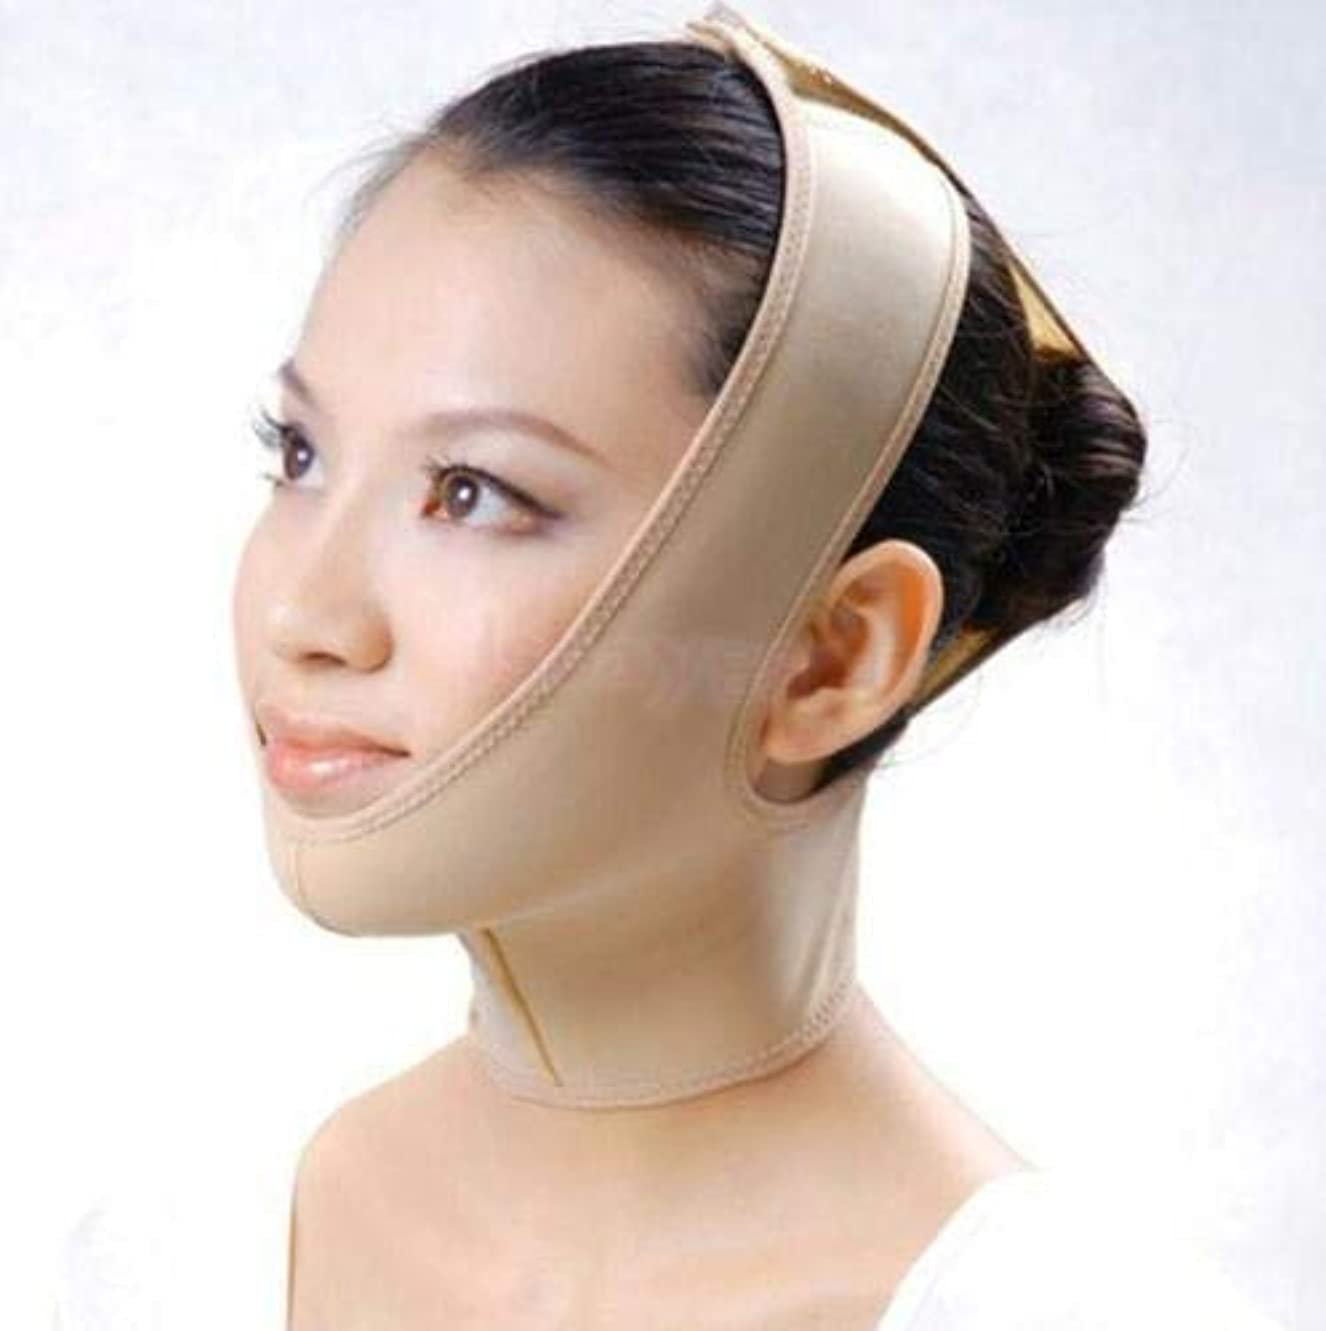 なくなるプロペラ喉頭FidgetGear ANTI WRINKLE V FACE CHIN CHEEK LIFT UP SLIMMING THIN BELT MASK STRAP BAND S-XXL Small